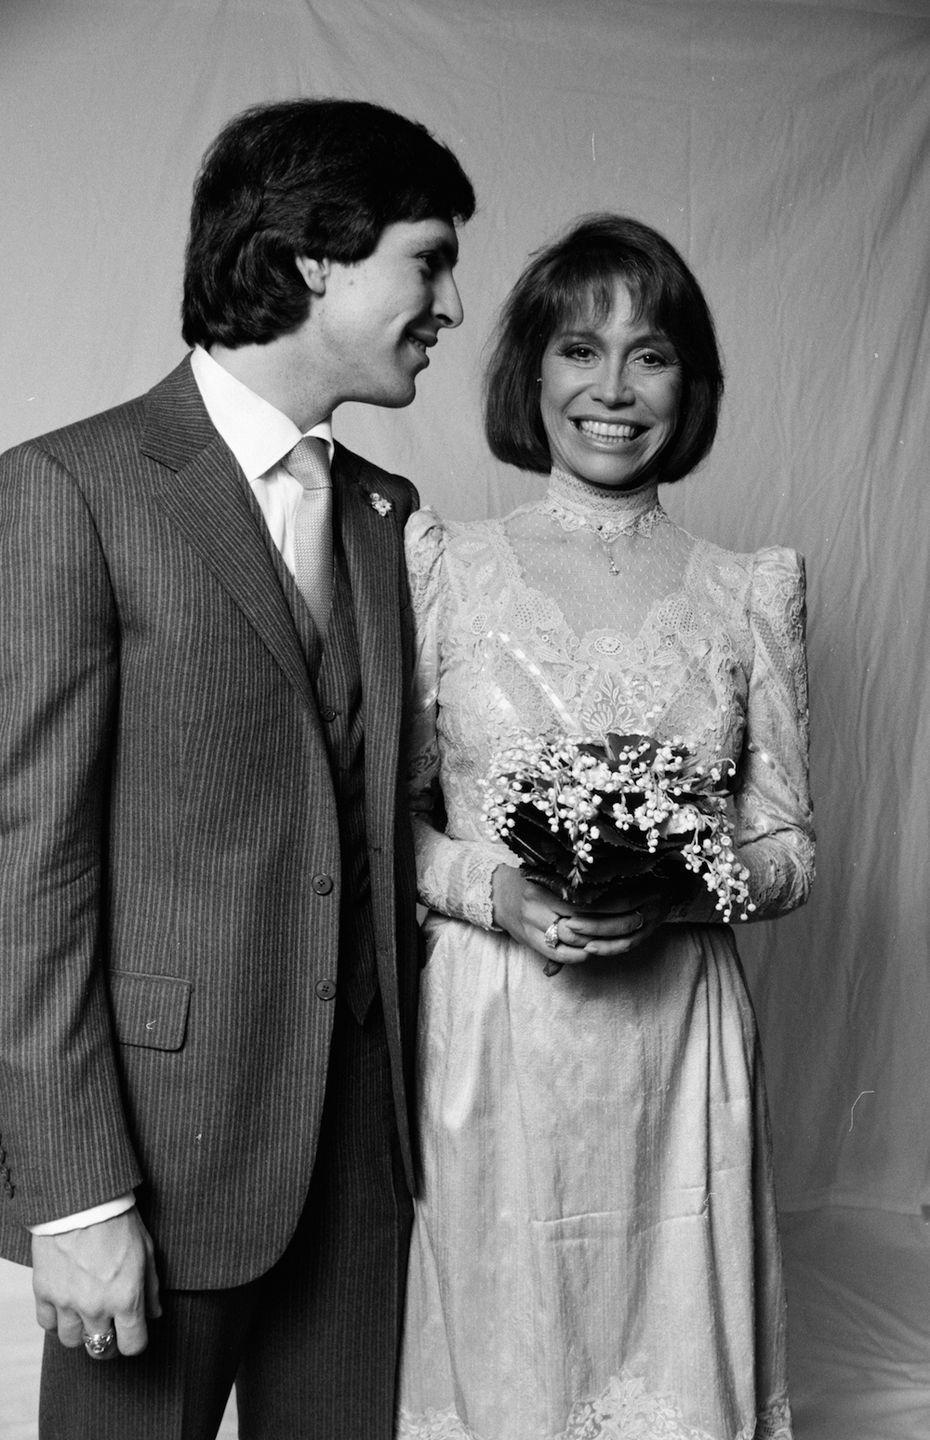 <p>Mary Tyler Moore went for more a subdued version of an on-trend '80s look: gathered sleeves and a high lace neckline. </p>